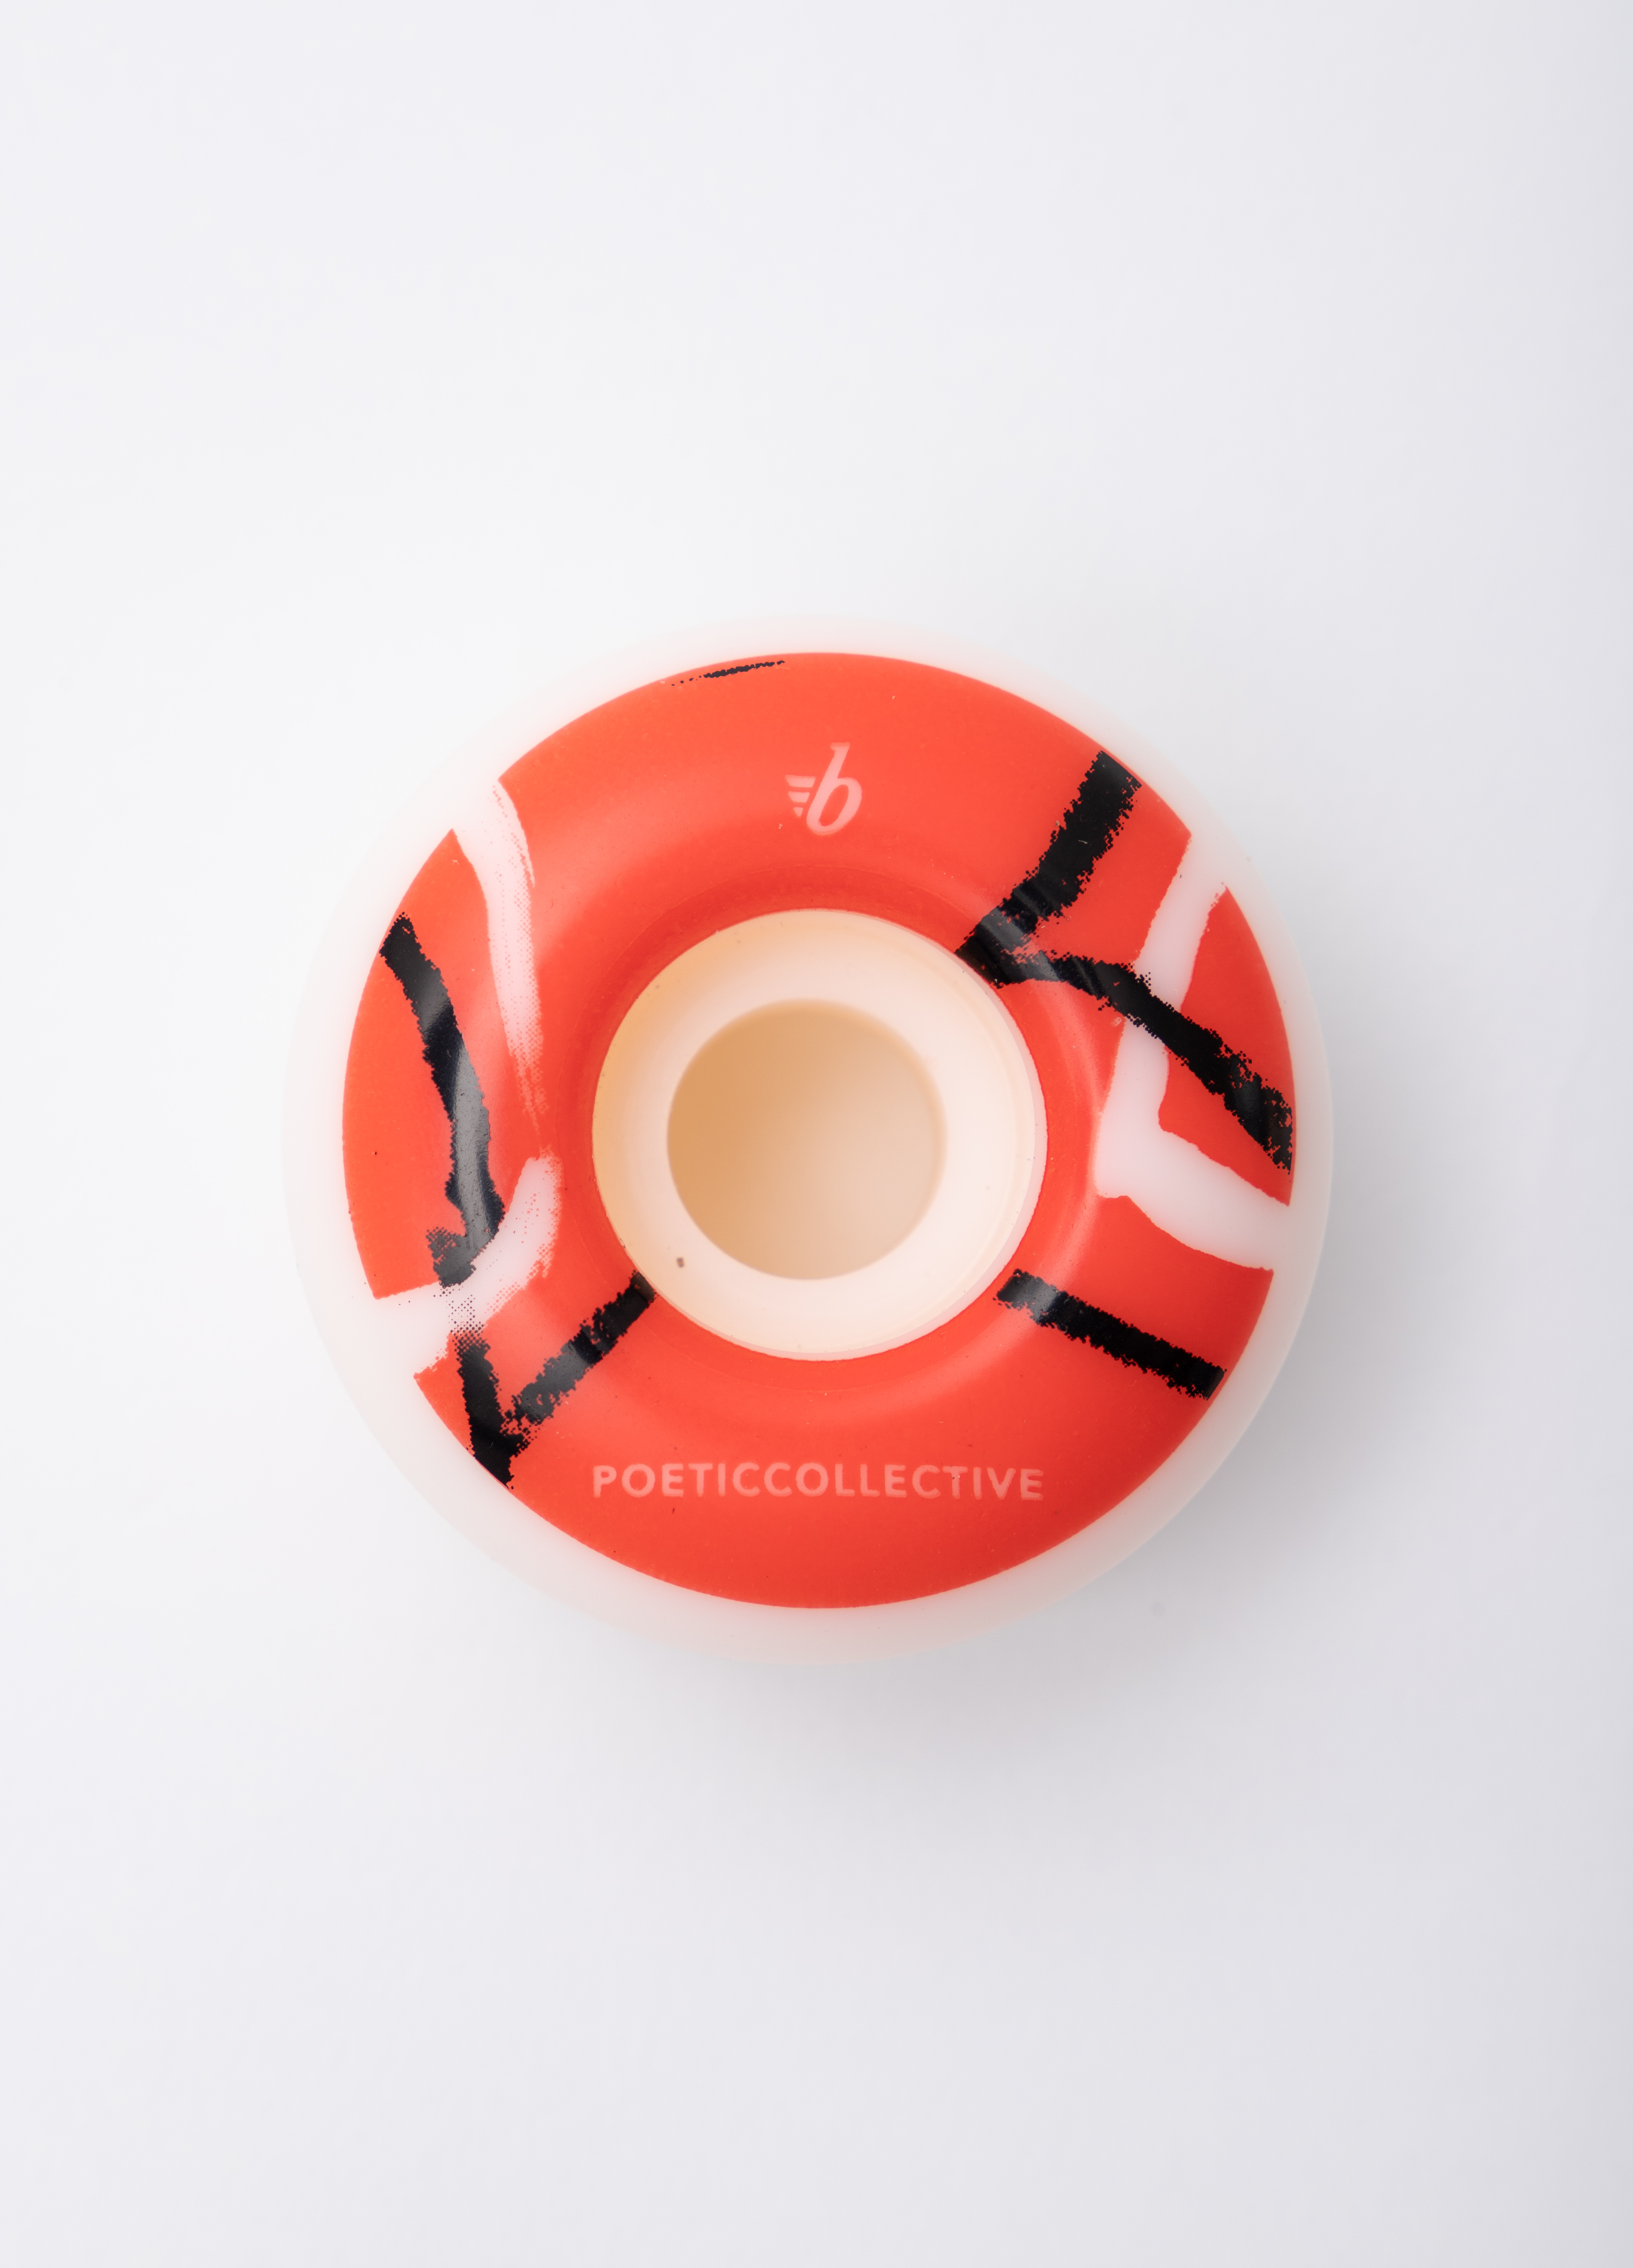 BRONX, X Poetic Collective, 101a, 53mm, Round Shape